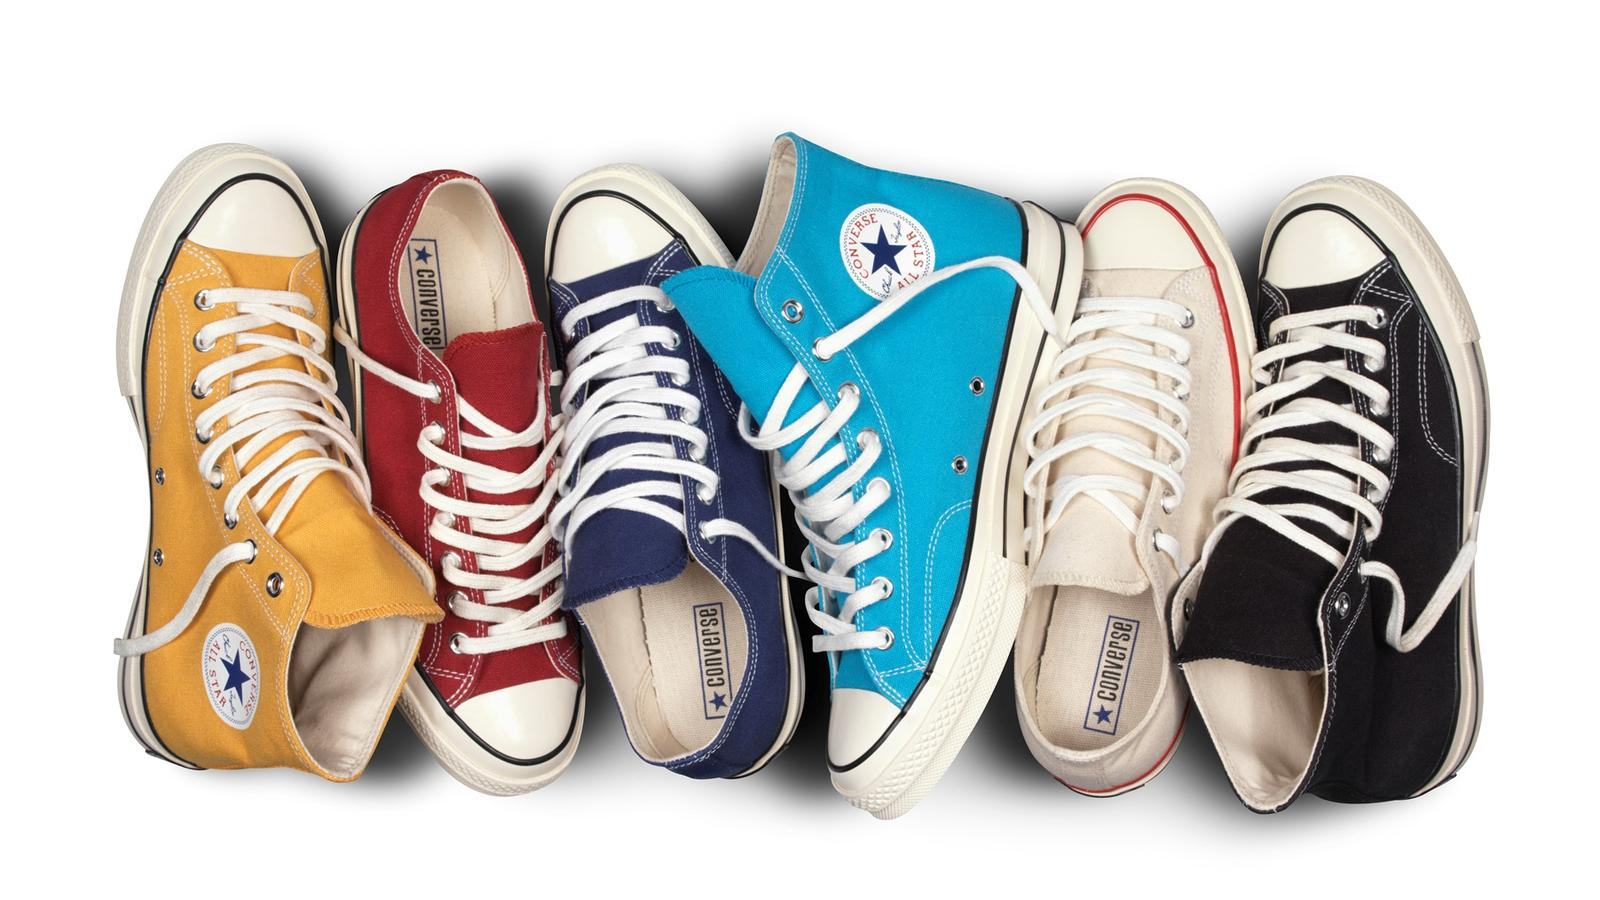 Converse 1970s Chuck Taylor All Star Group Original